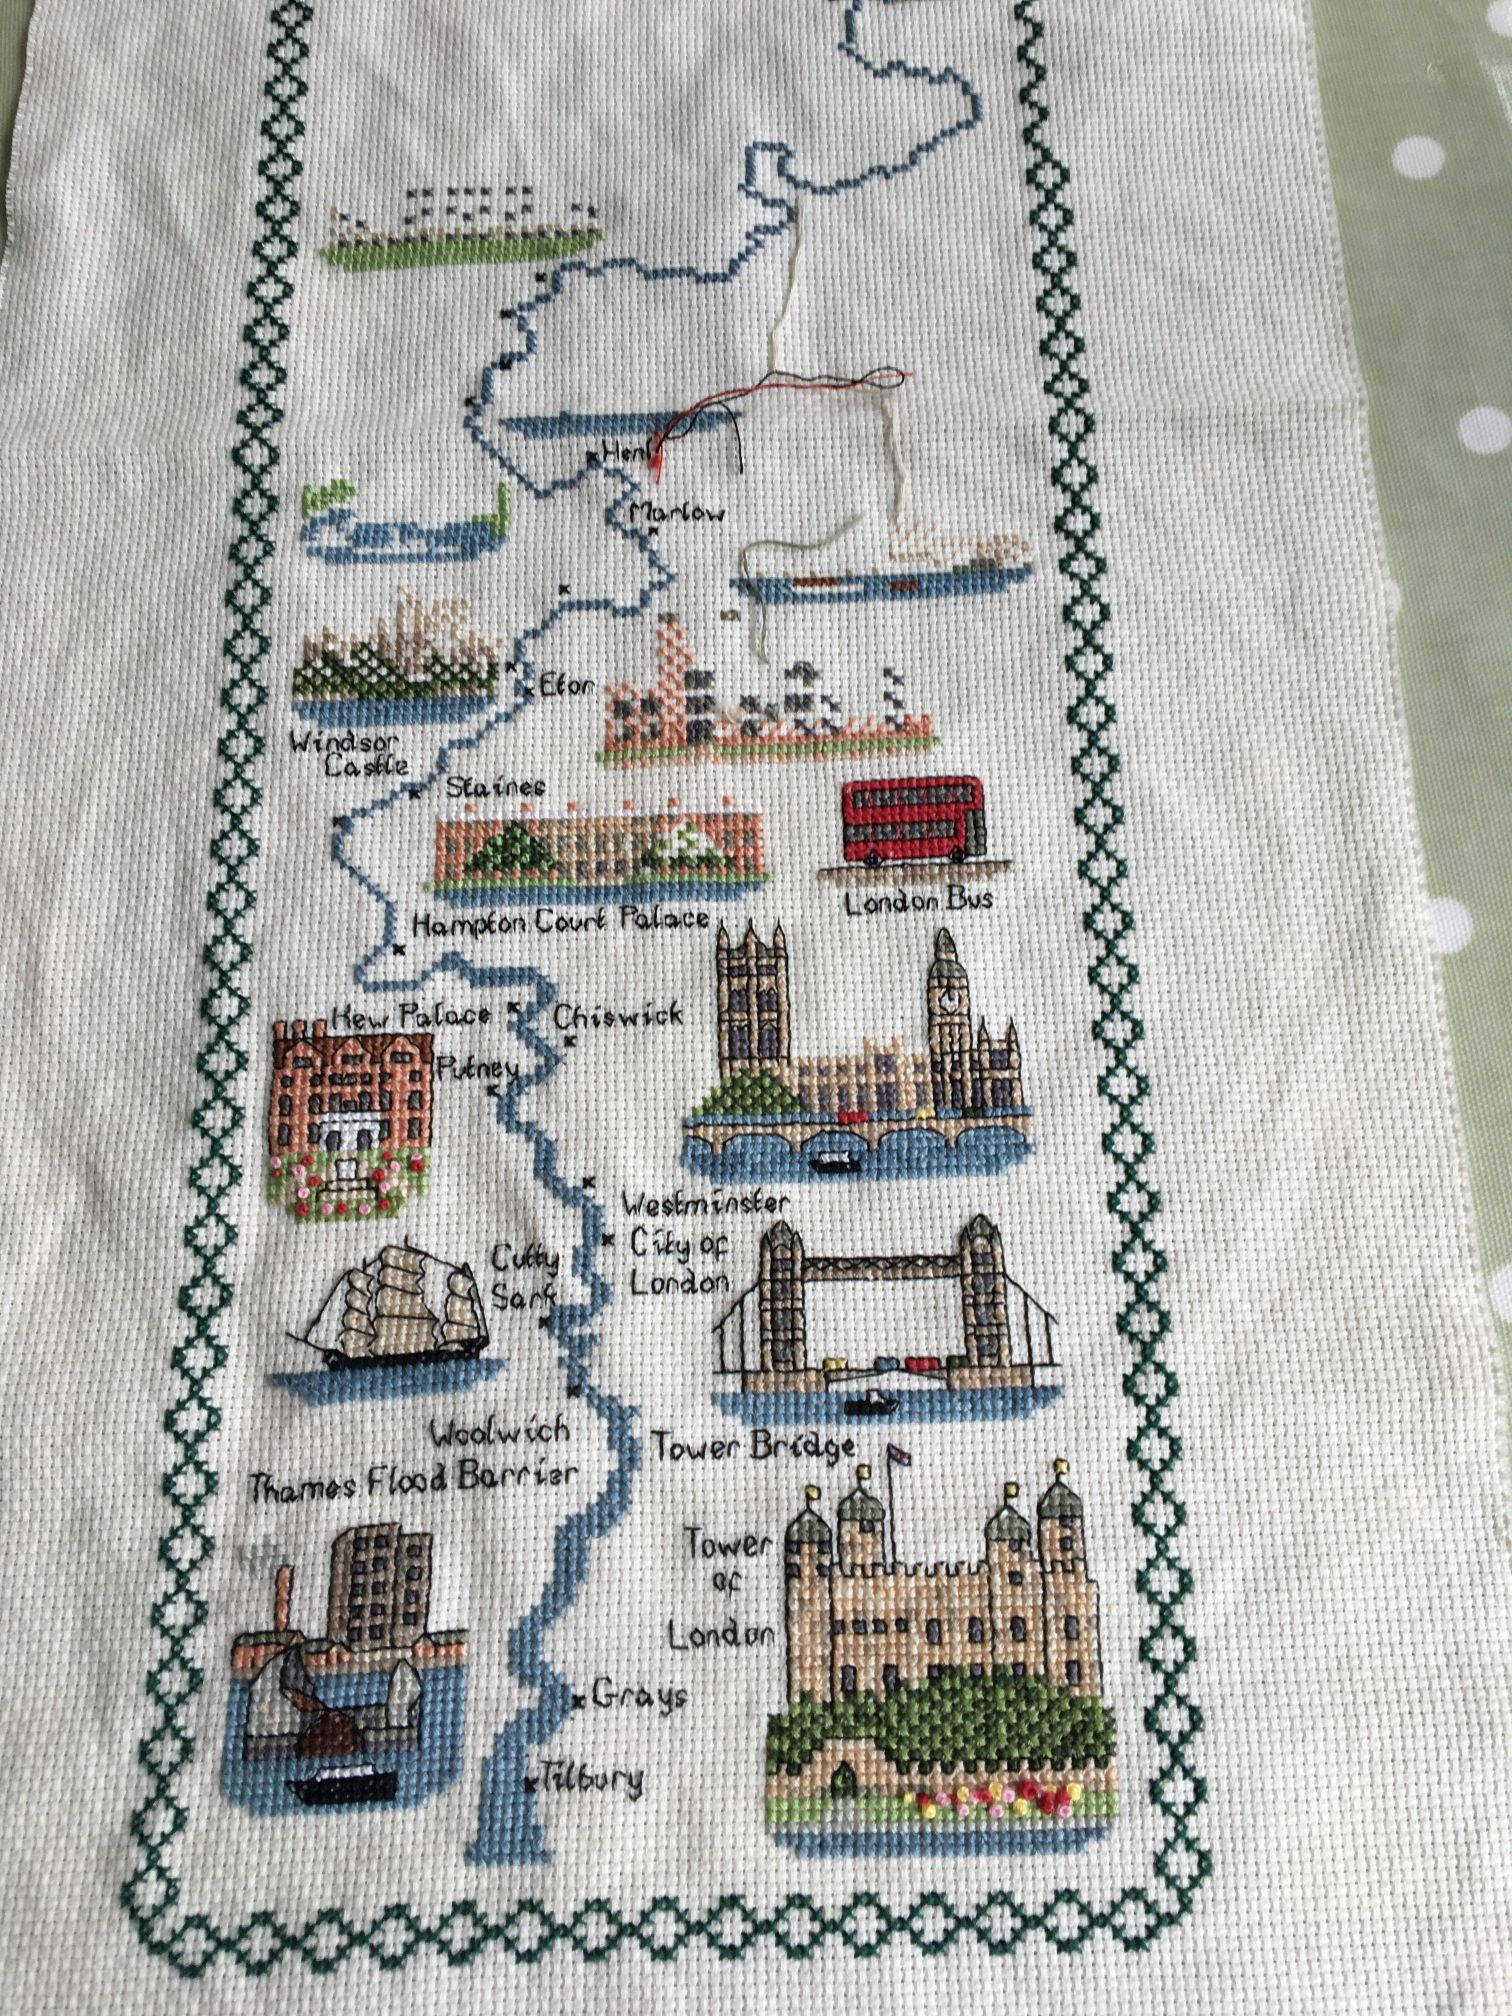 Thames Walk embroidery